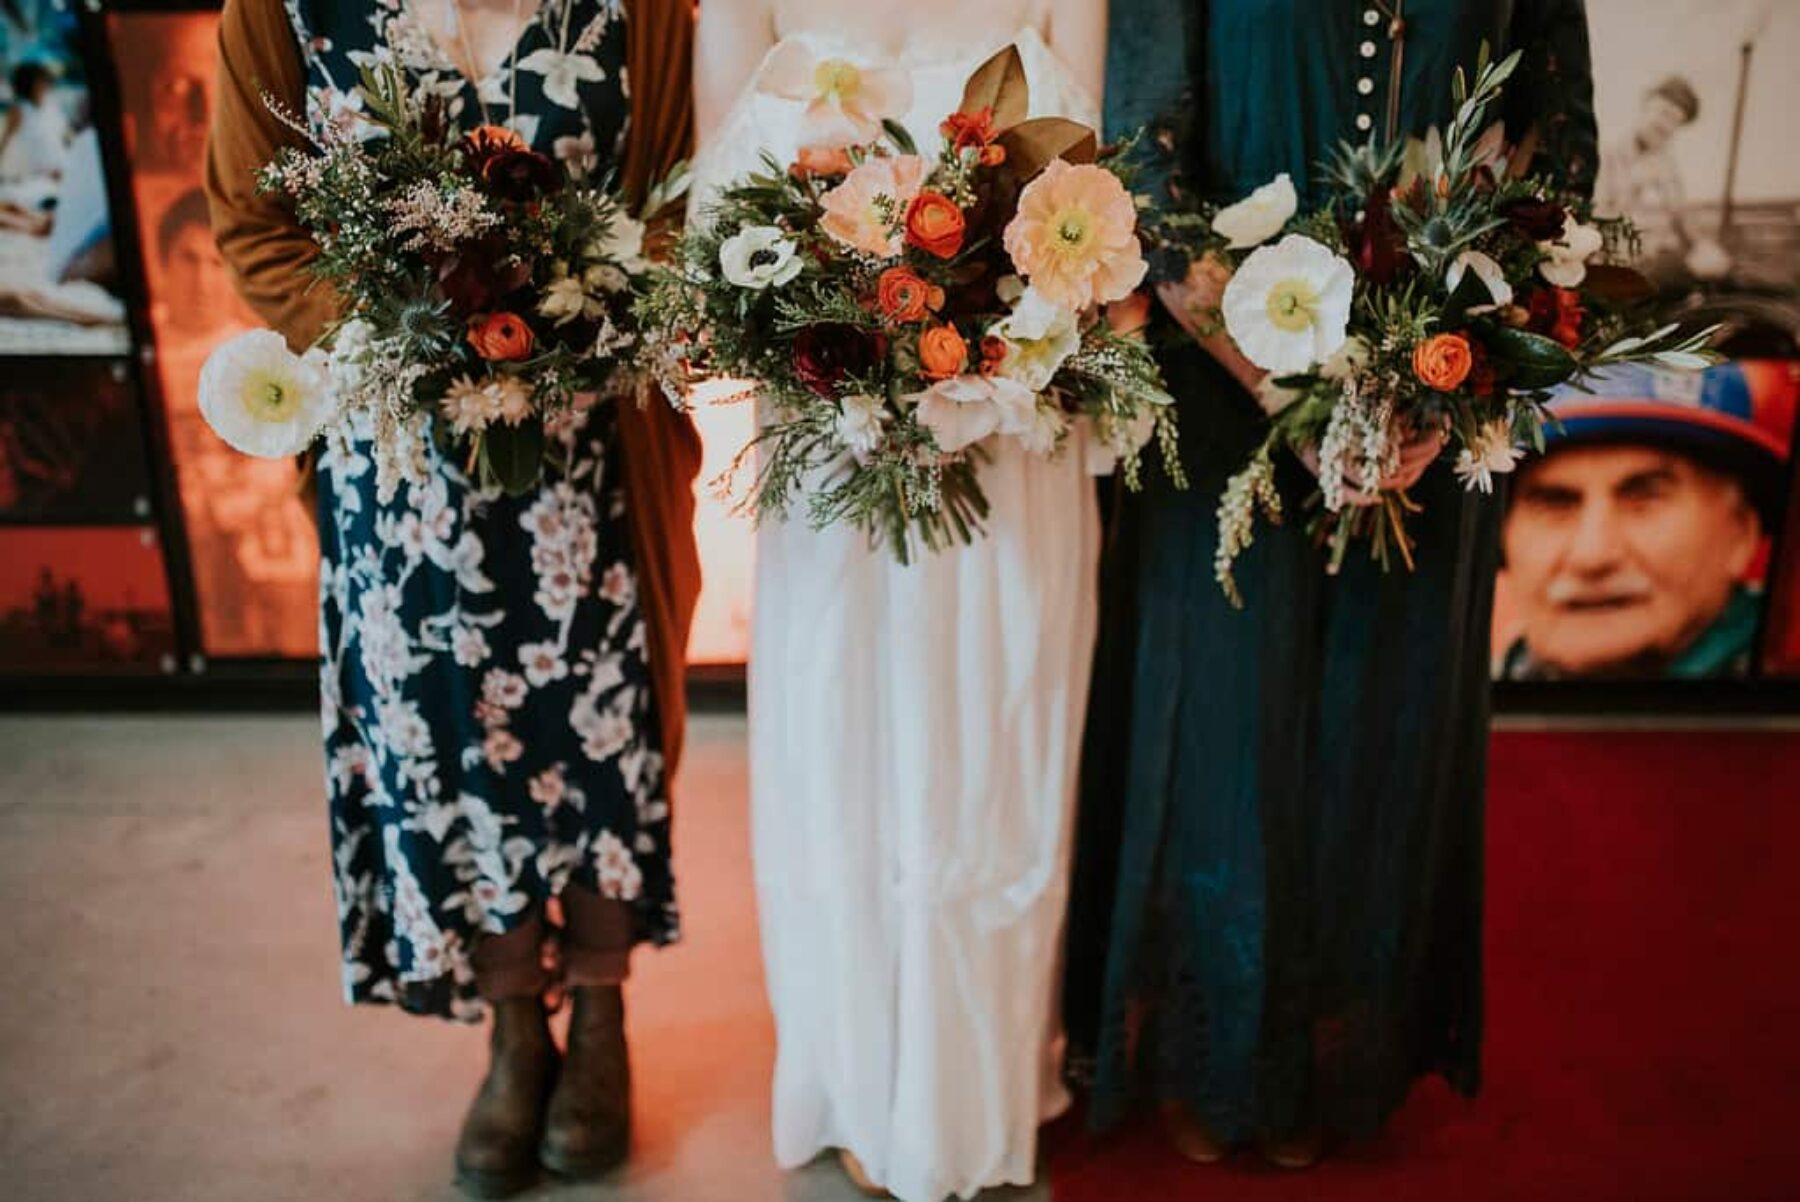 Moody bohemian wedding at Newcastle Museum - photography by Barefoot & Bearded